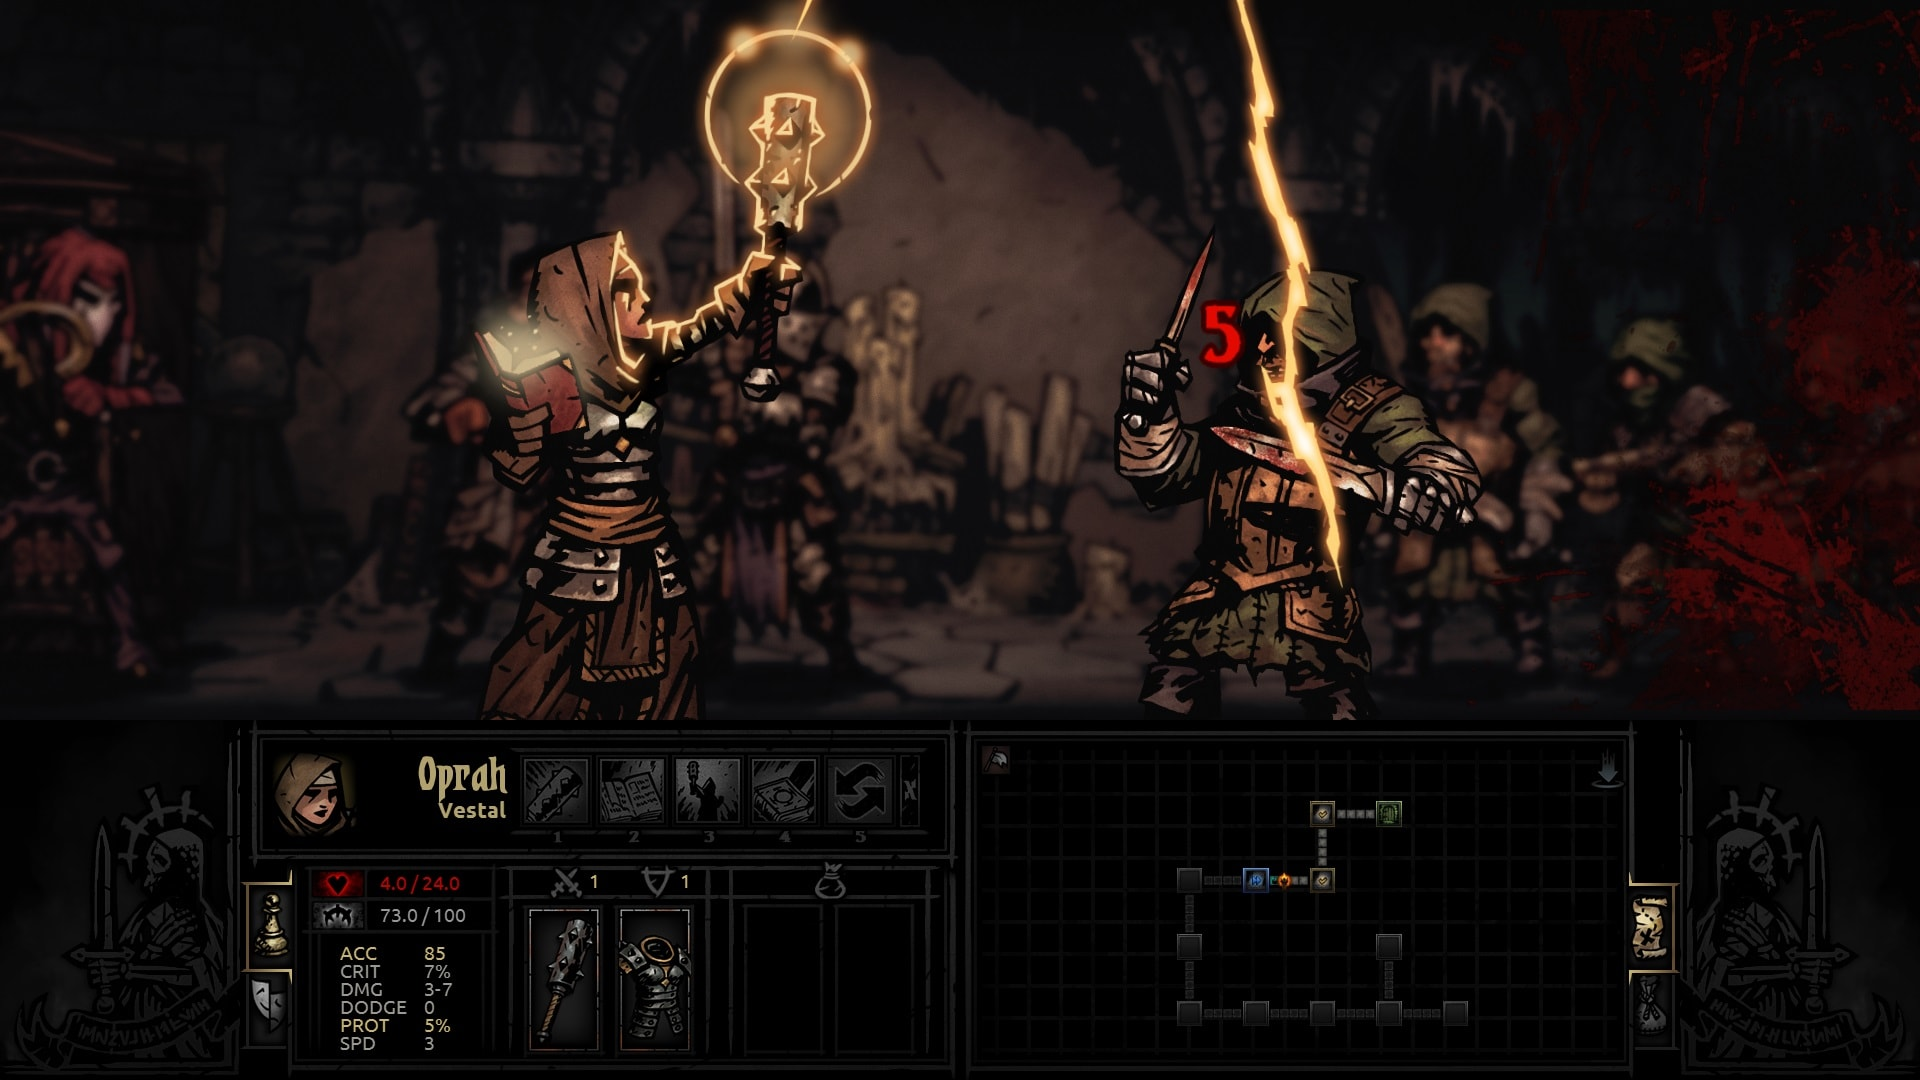 Darkest Dungeon: Vestal widescreen wallpapers